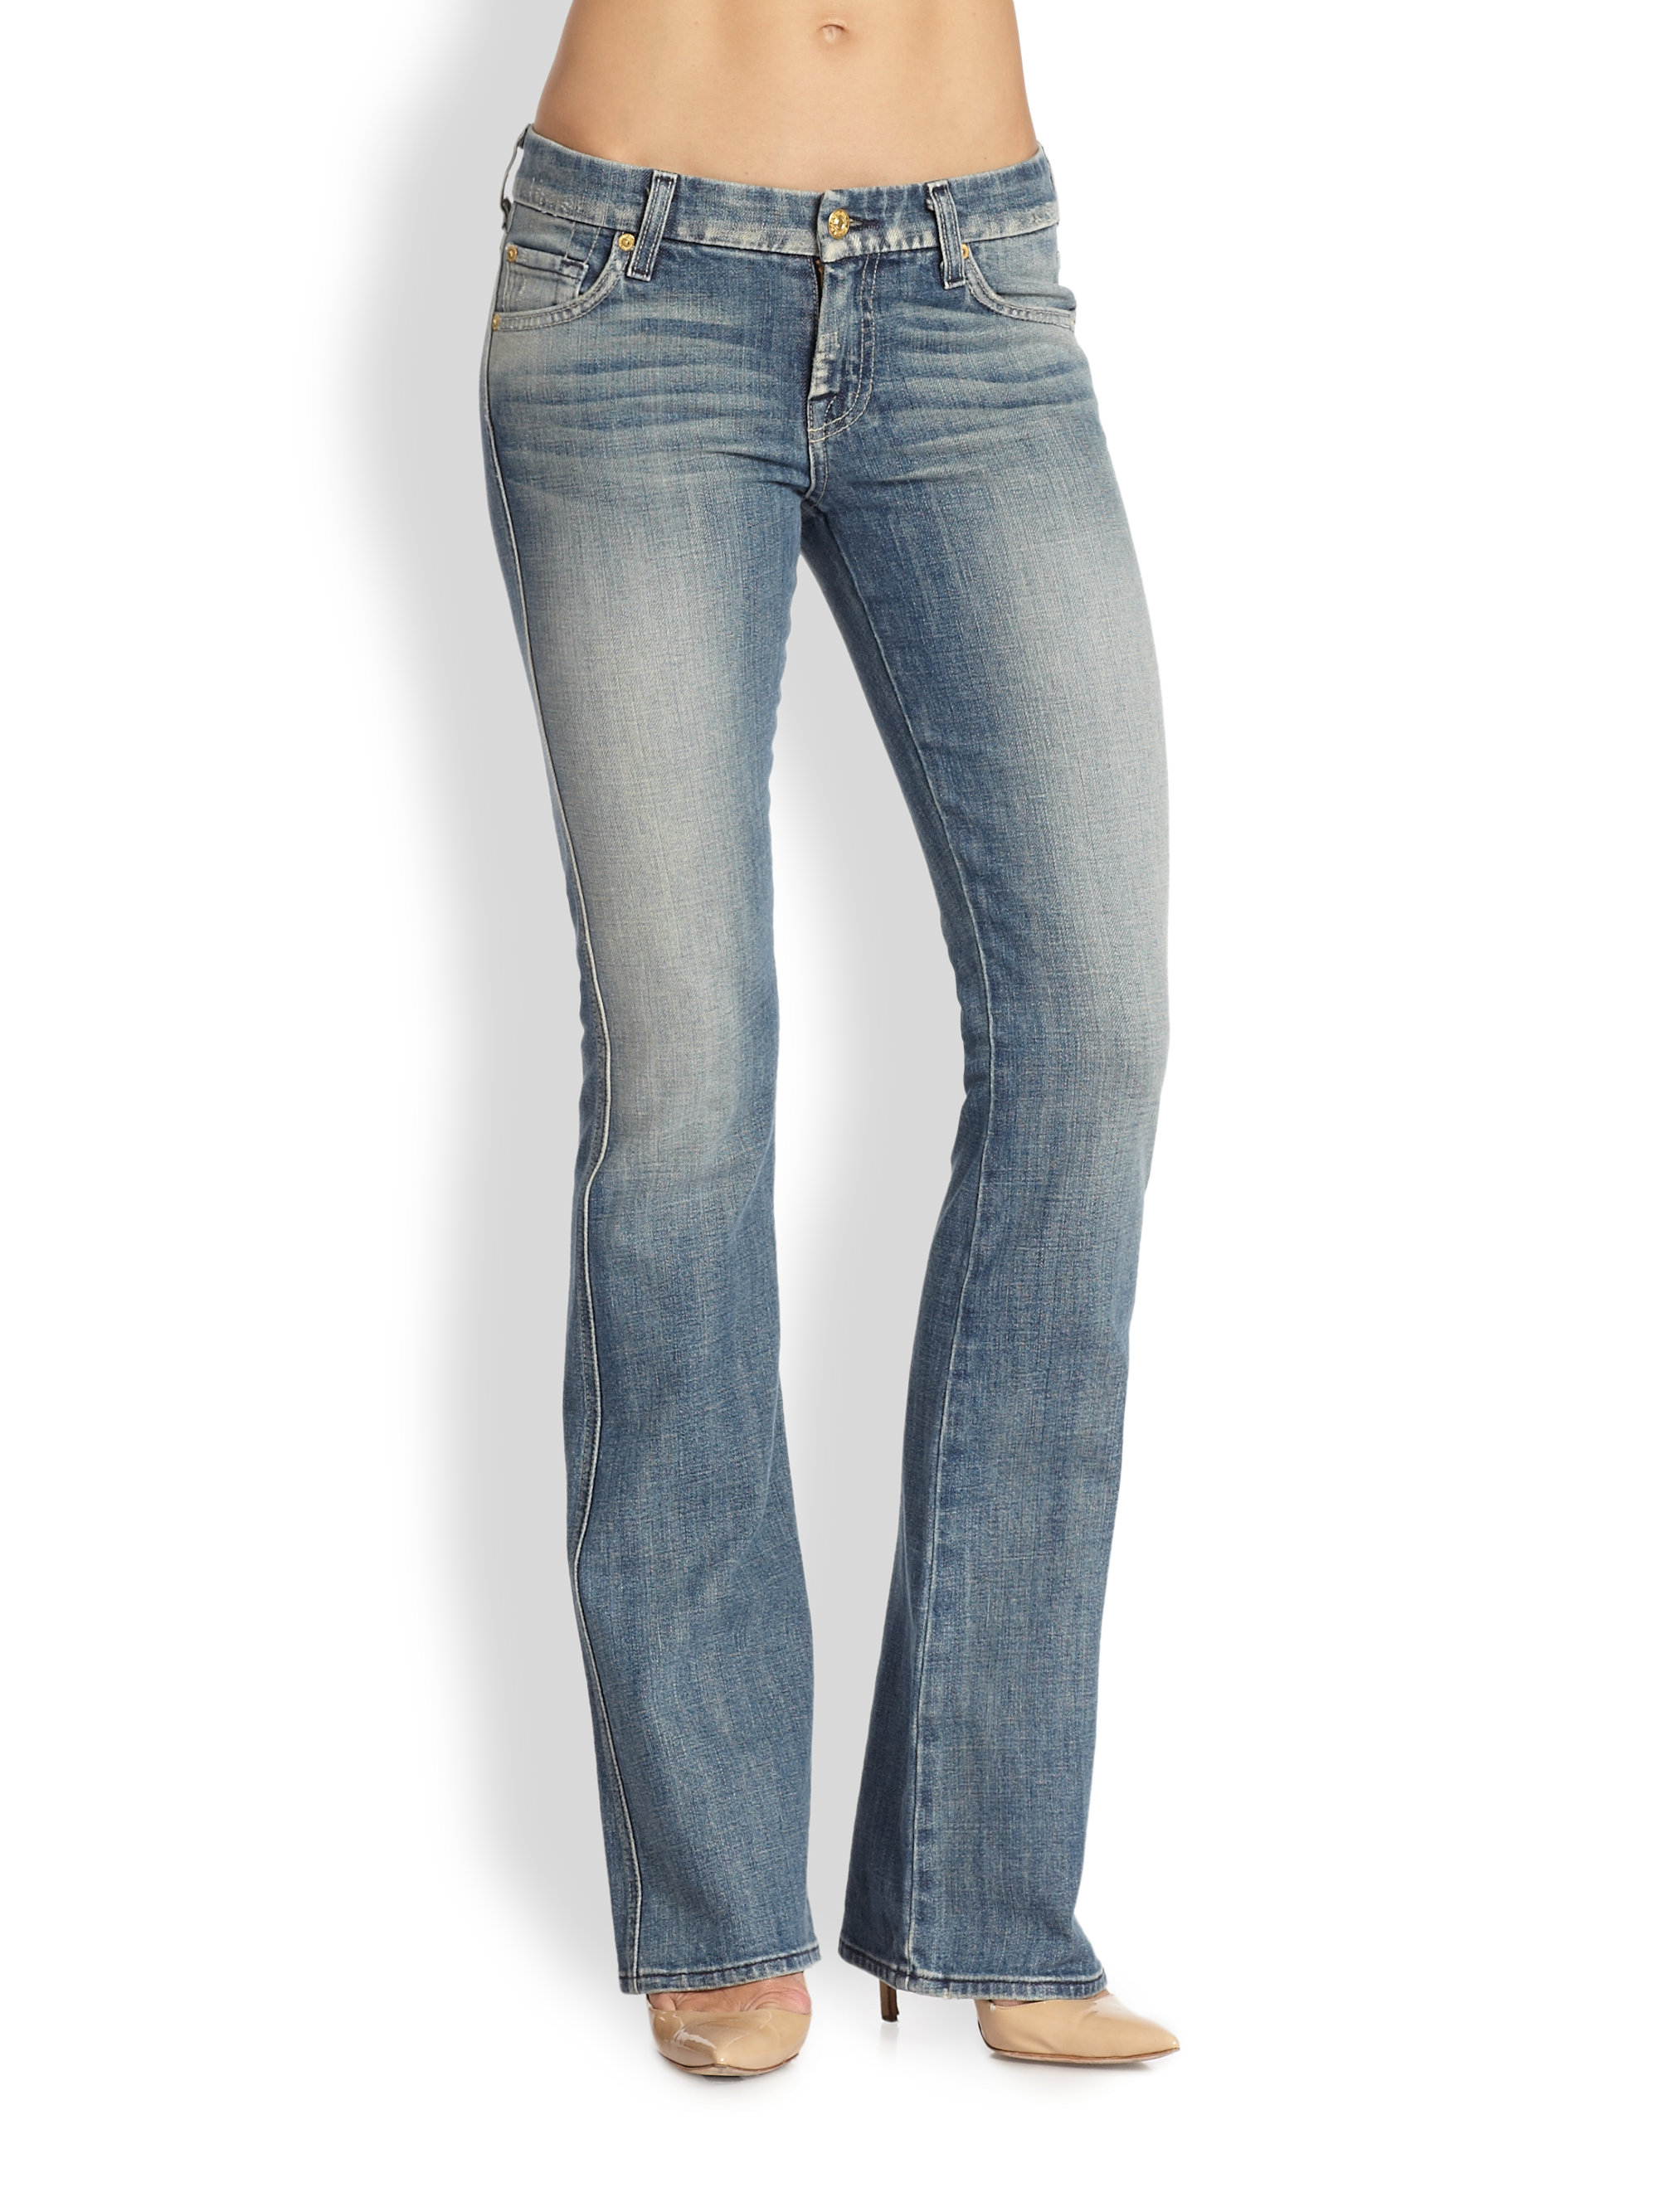 ee825224 Sweet Deals for 7 For All Mankind Jeans - more.com